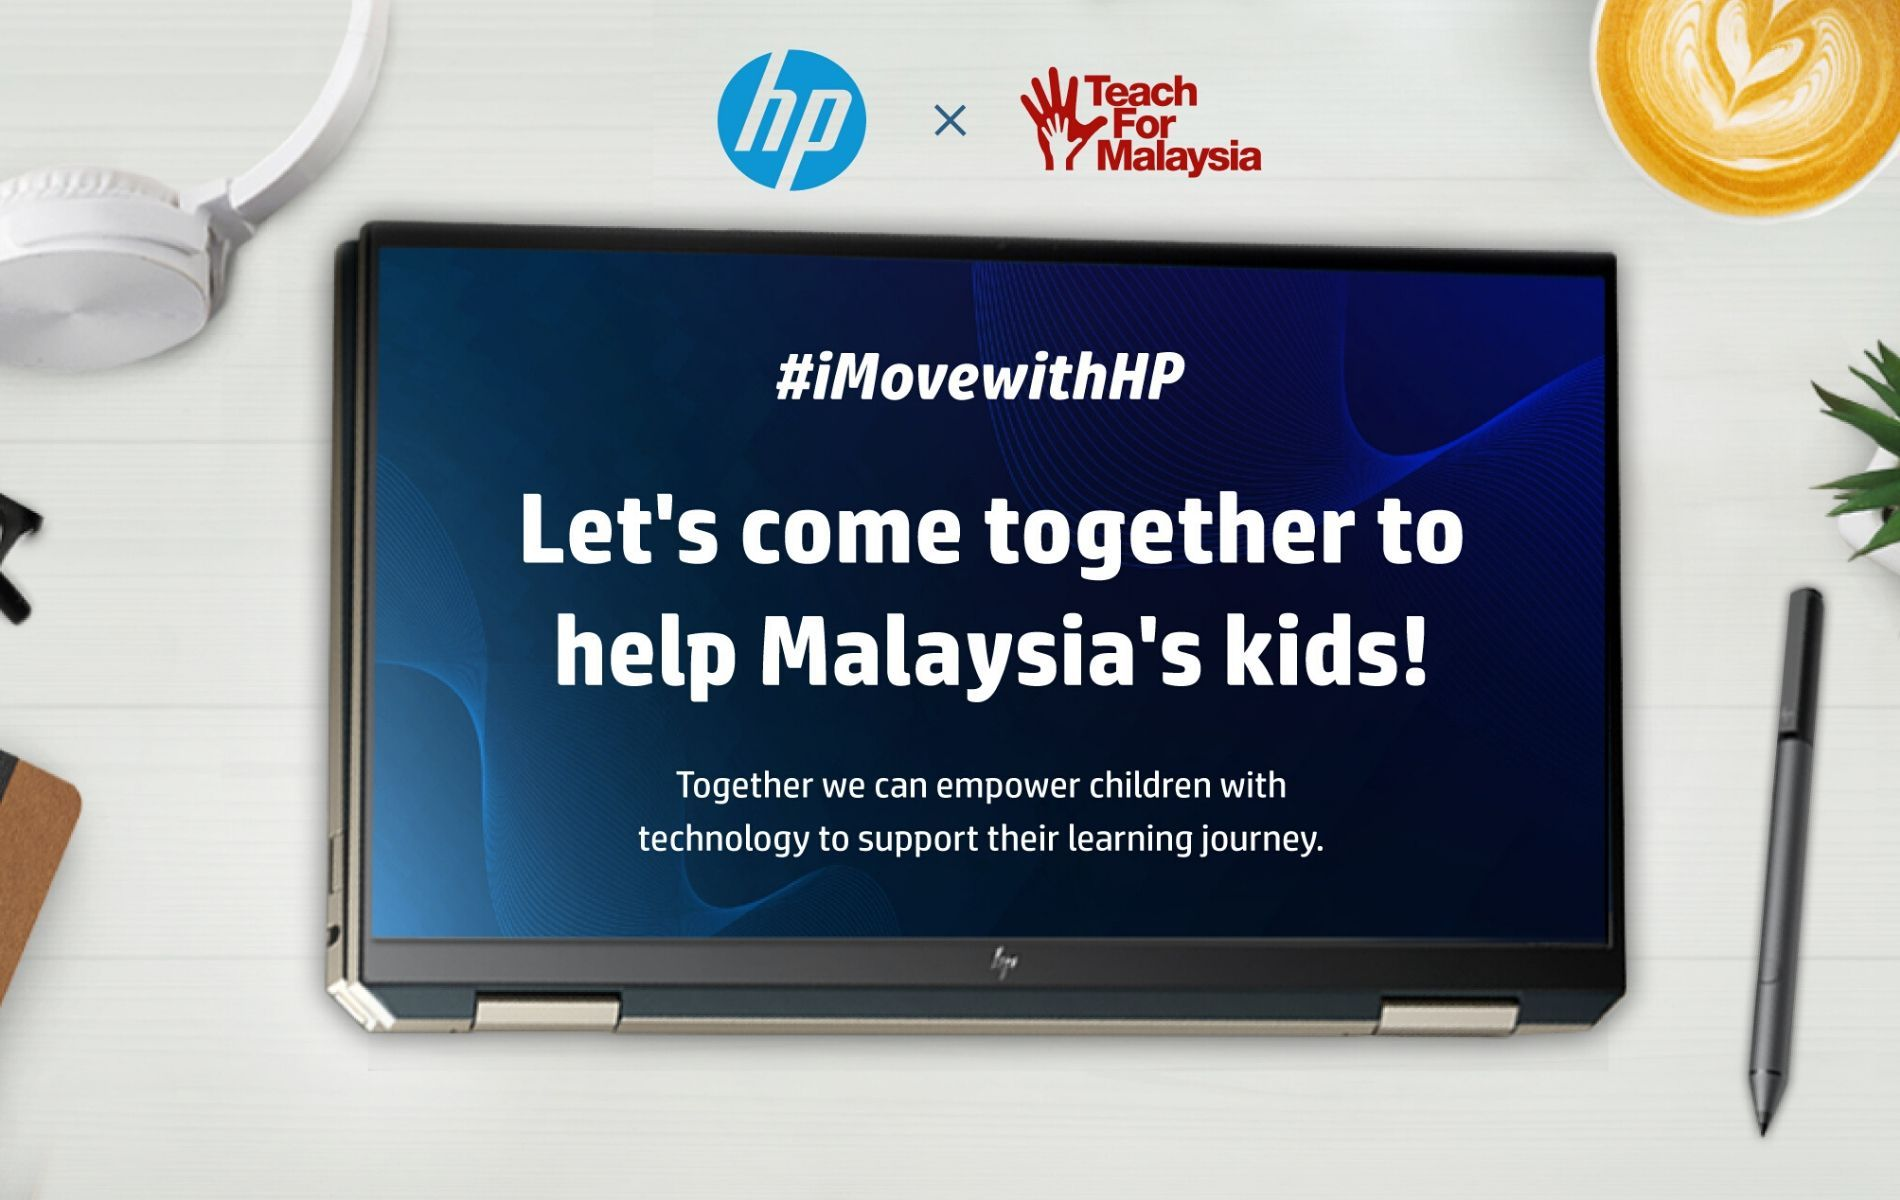 HP Malaysia Partners With Teach For Malaysia To Support Students In Need